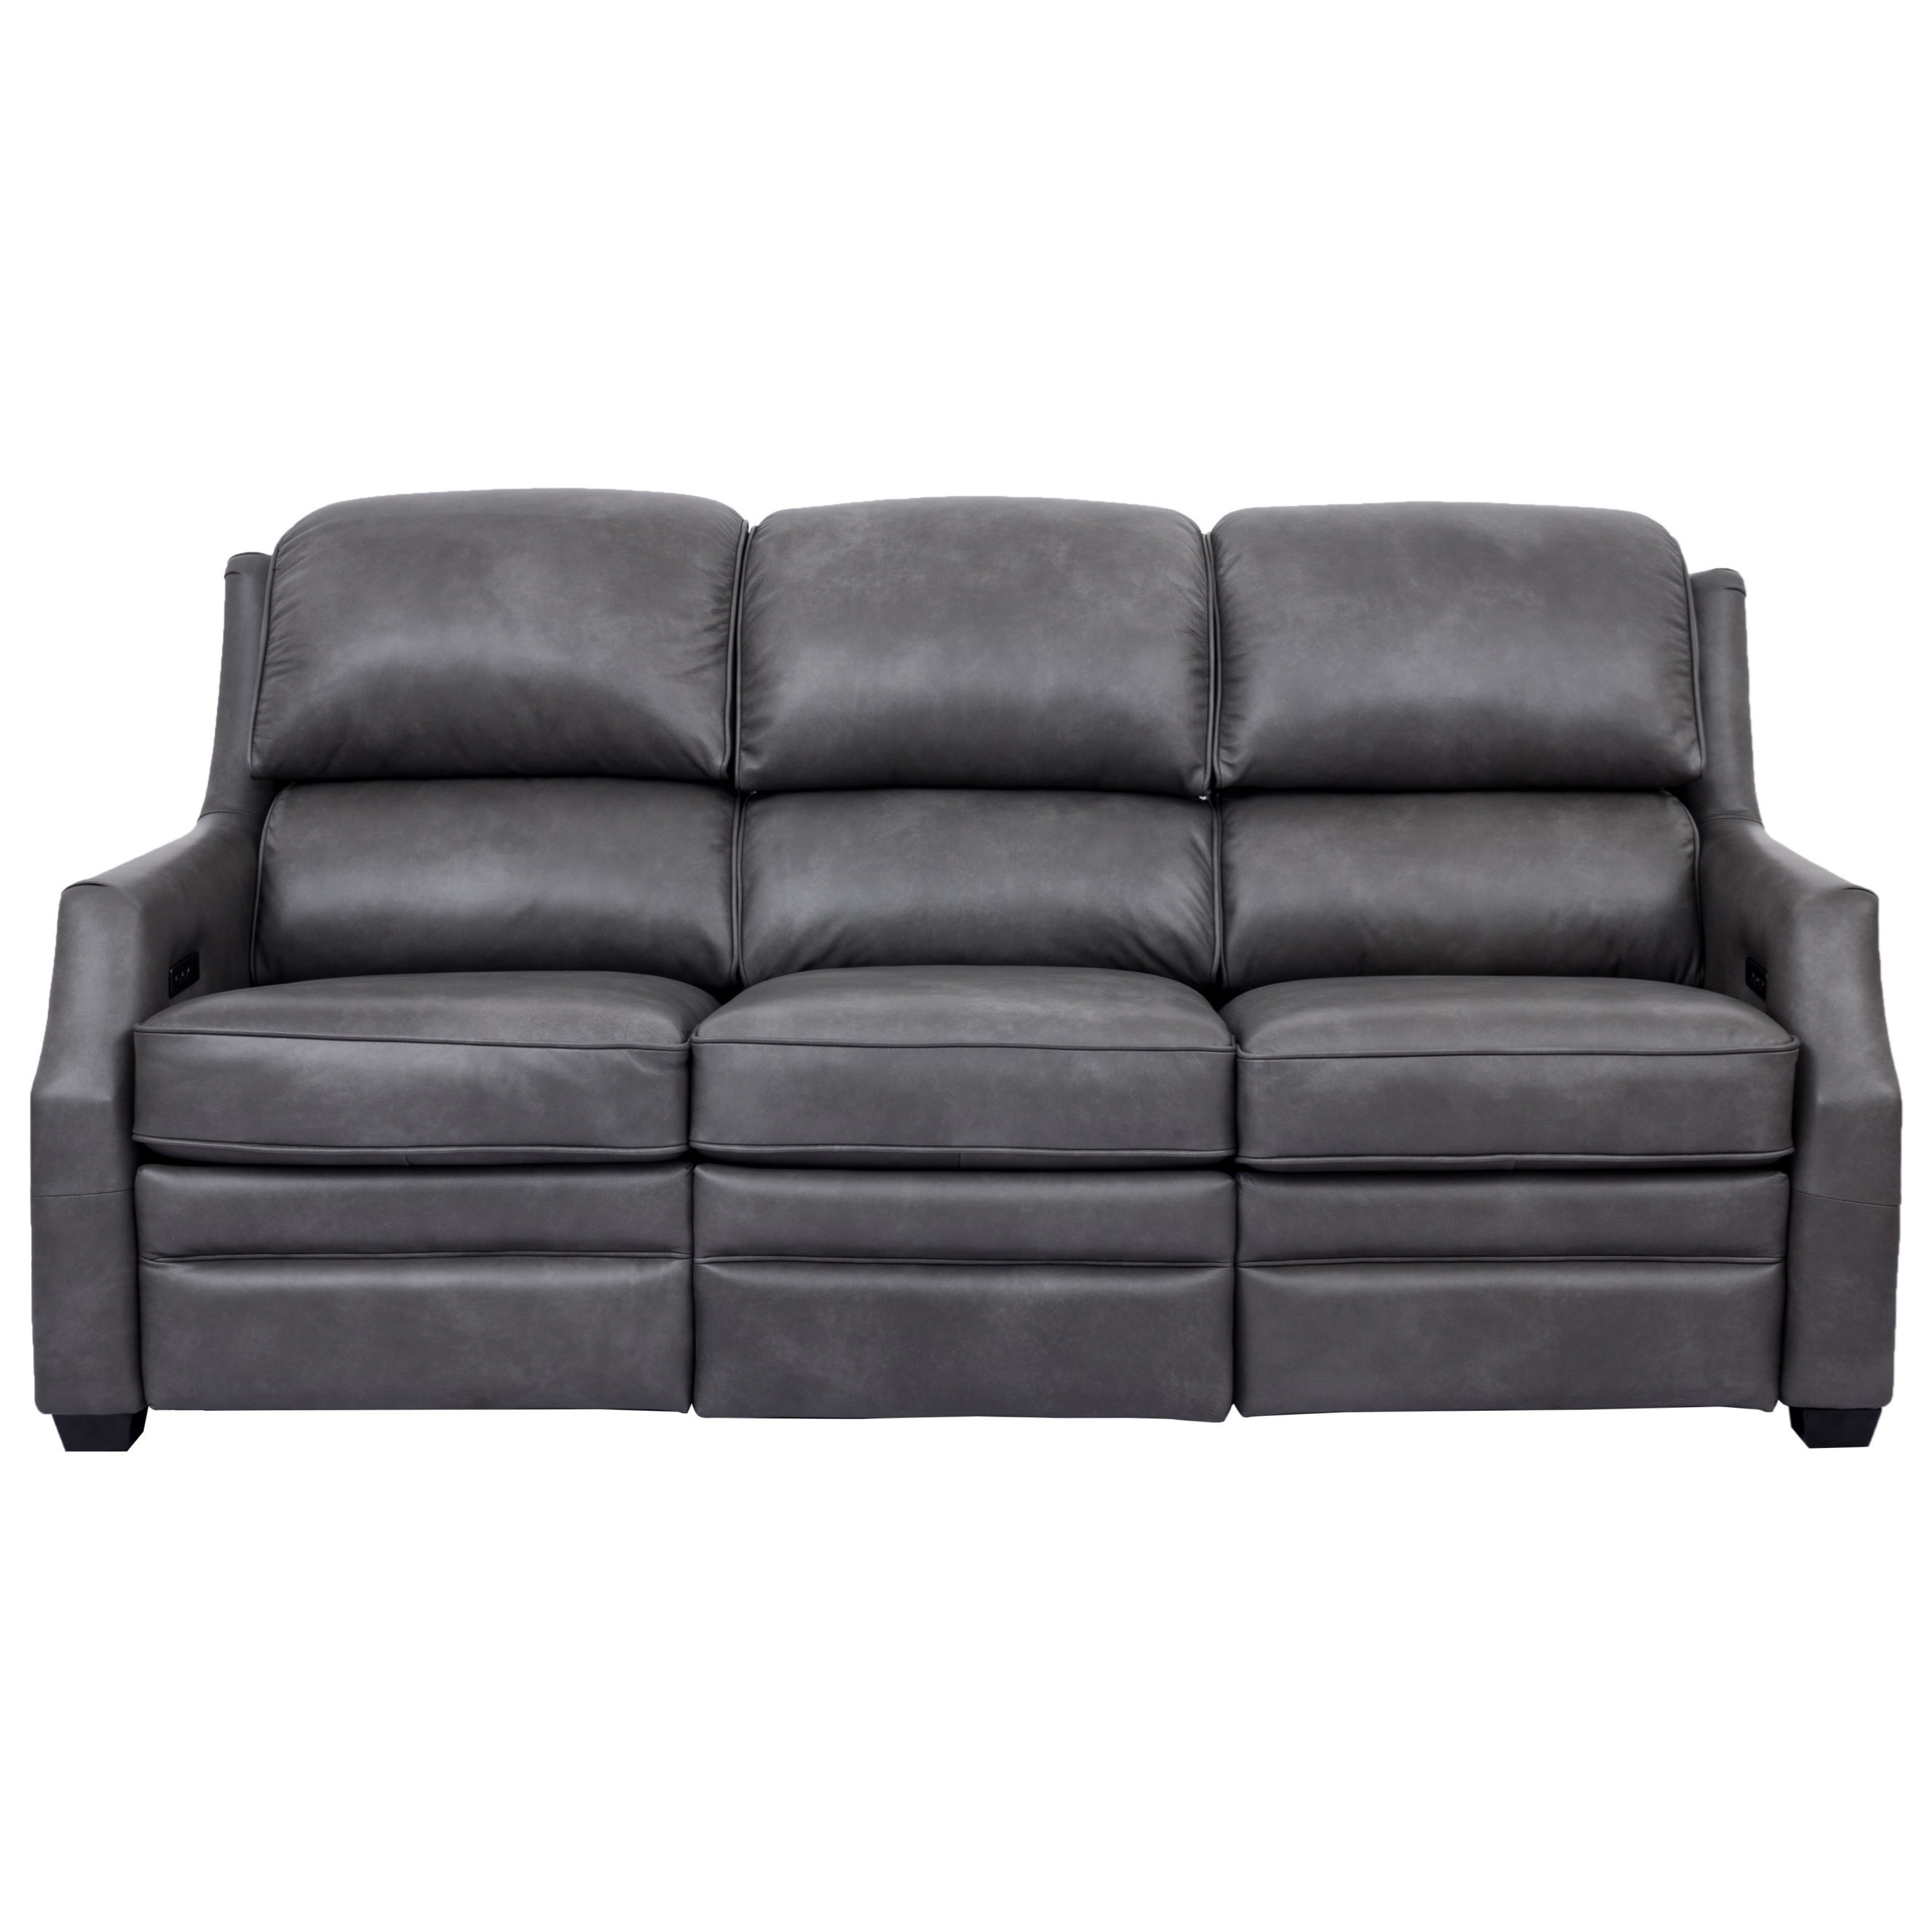 70010 Dual Power Headrest Reclining Sofa by Cheers at Lagniappe Home Store